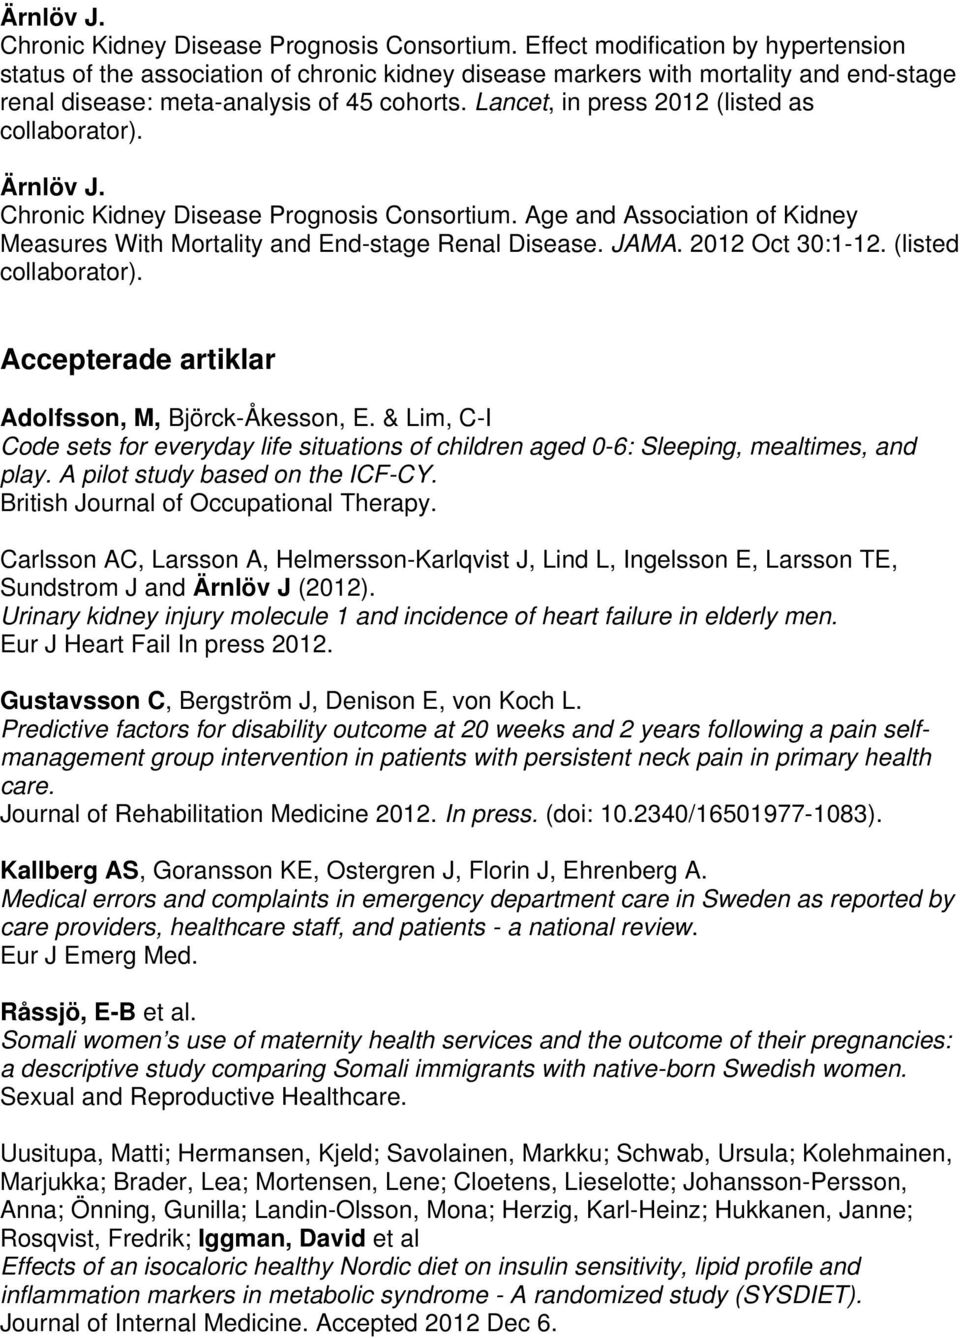 Lancet, in press 2012 (listed as collaborator).  Age and Association of Kidney Measures With Mortality and End-stage Renal Disease. JAMA. 2012 Oct 30:1-12. (listed collaborator).